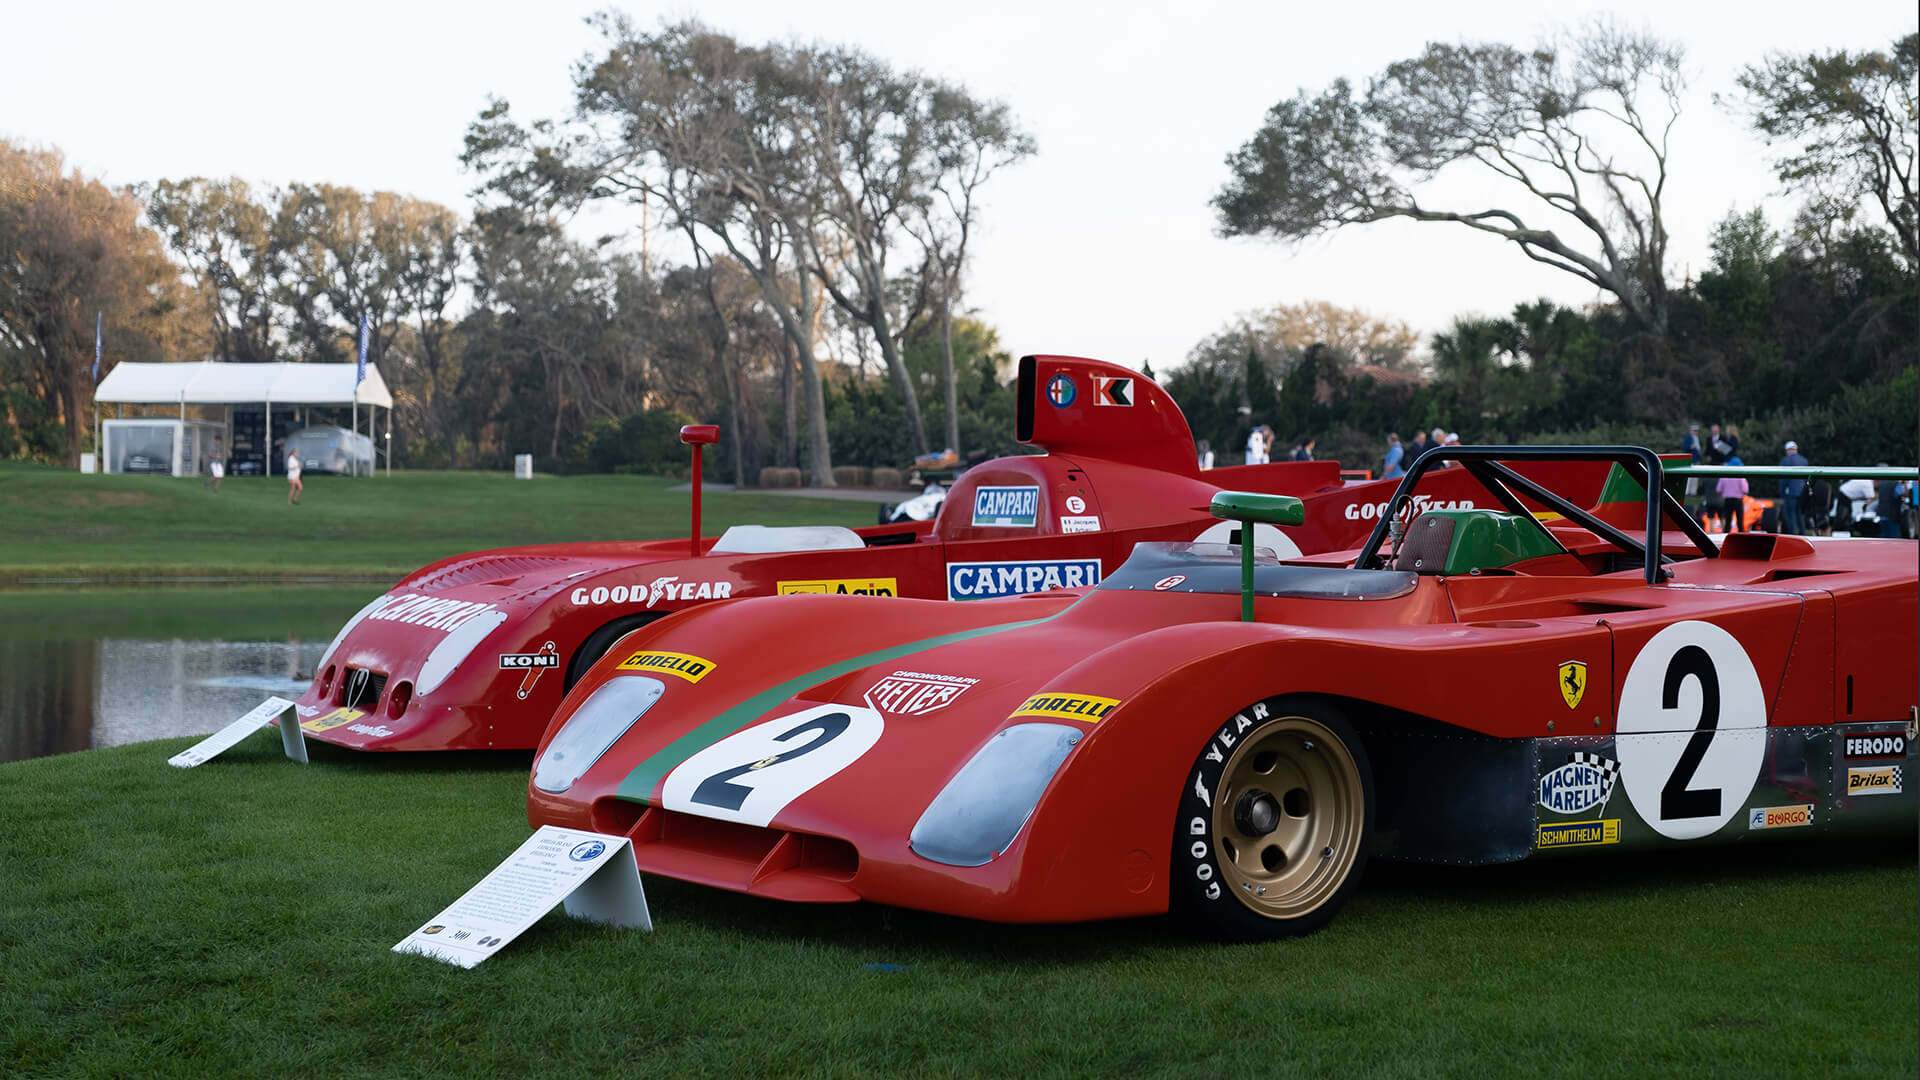 The 2019 Amelia Island Concours d'Elegance